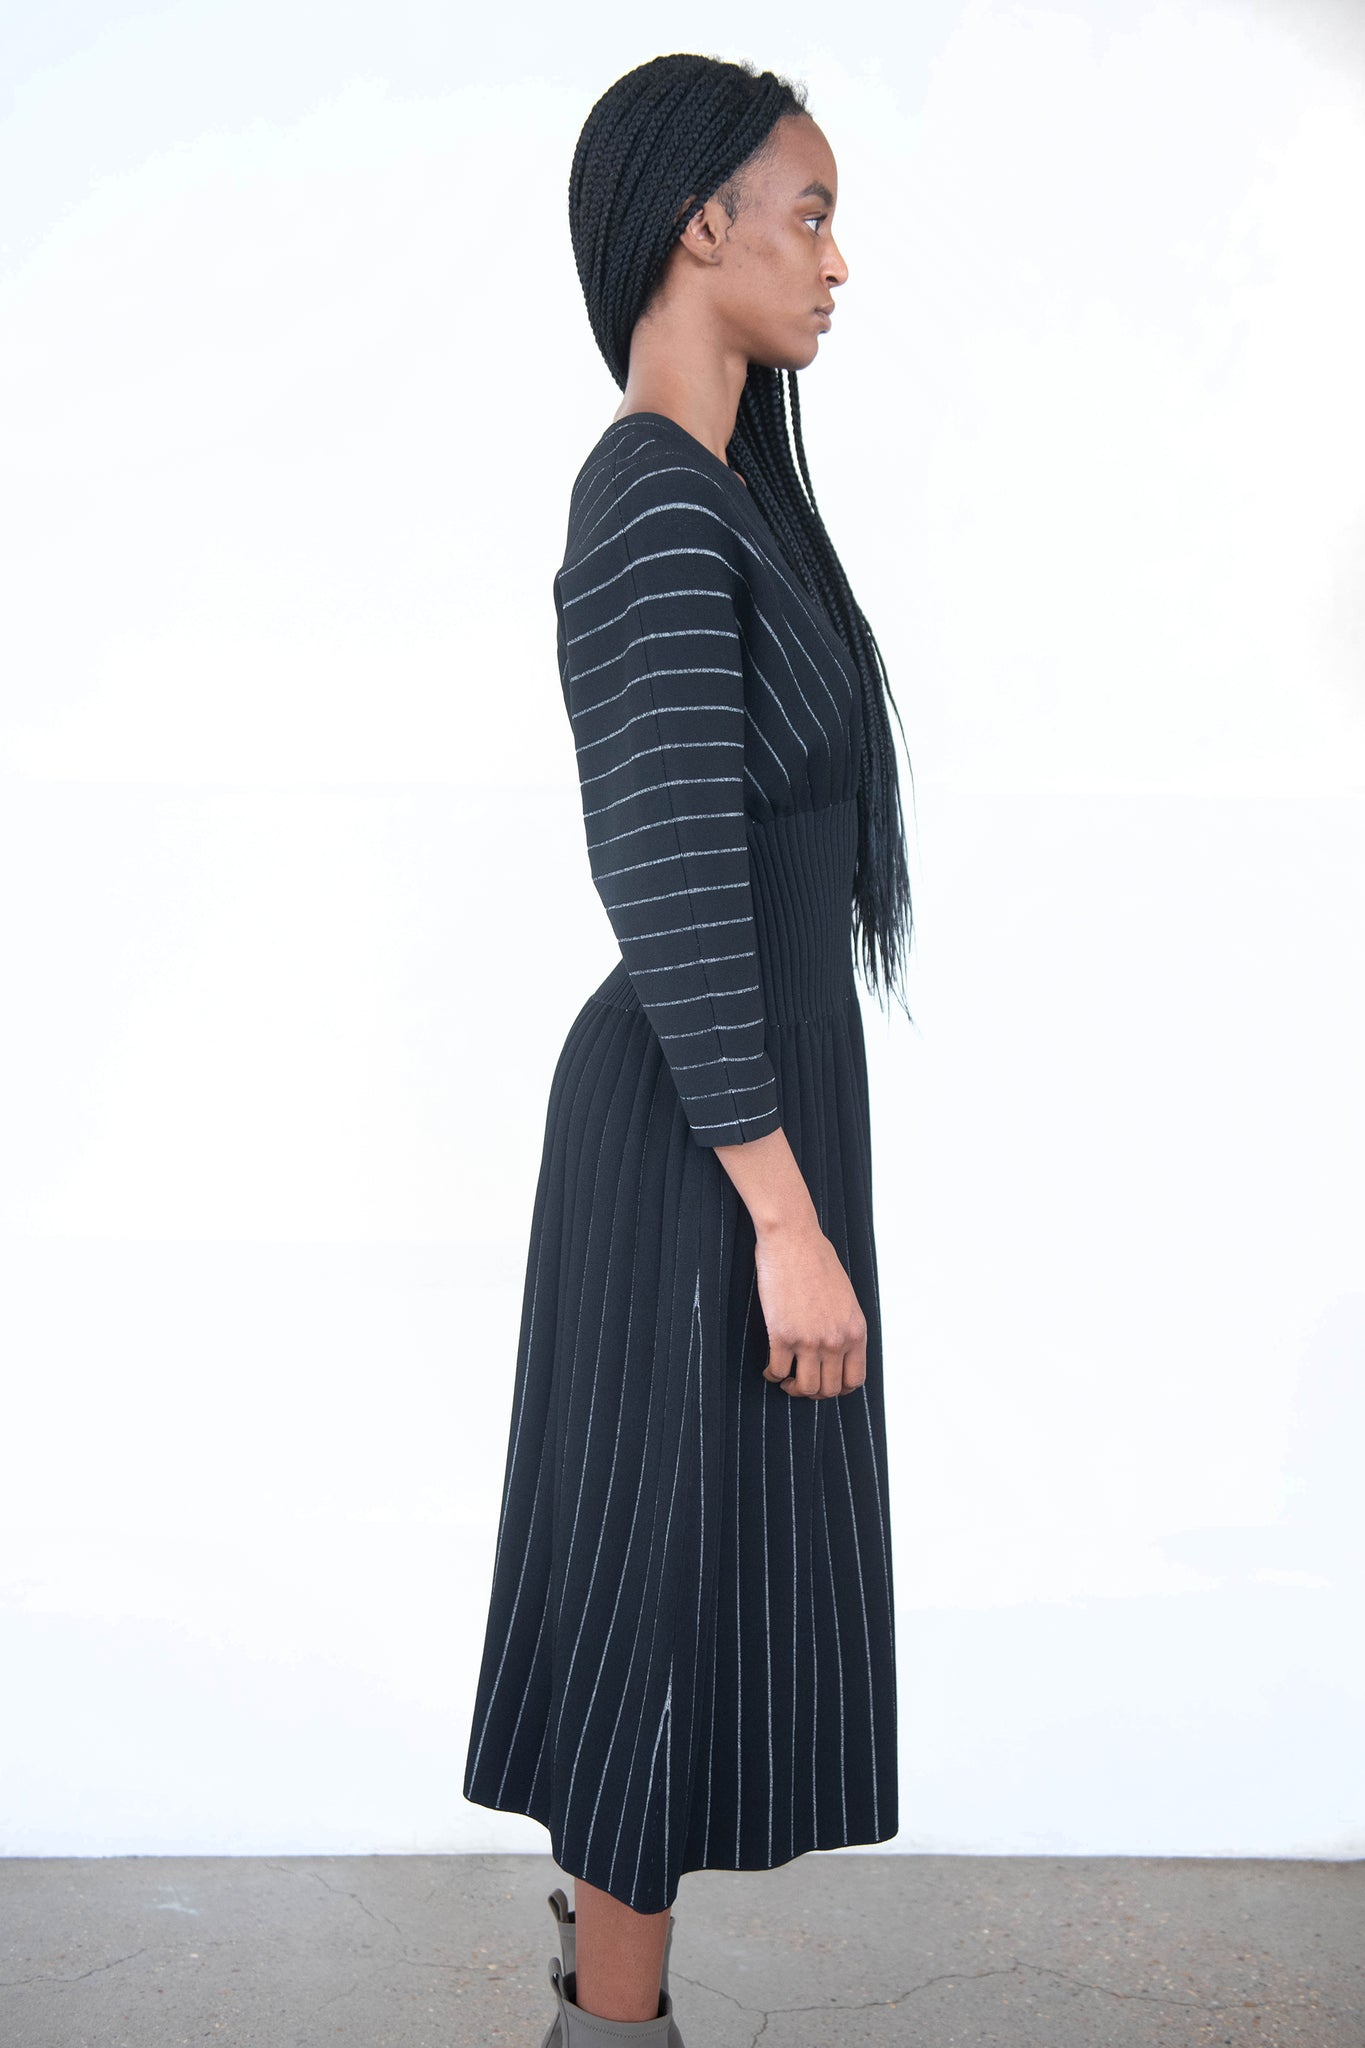 proenza schouler - chalk stripe knit dress, black and ecru